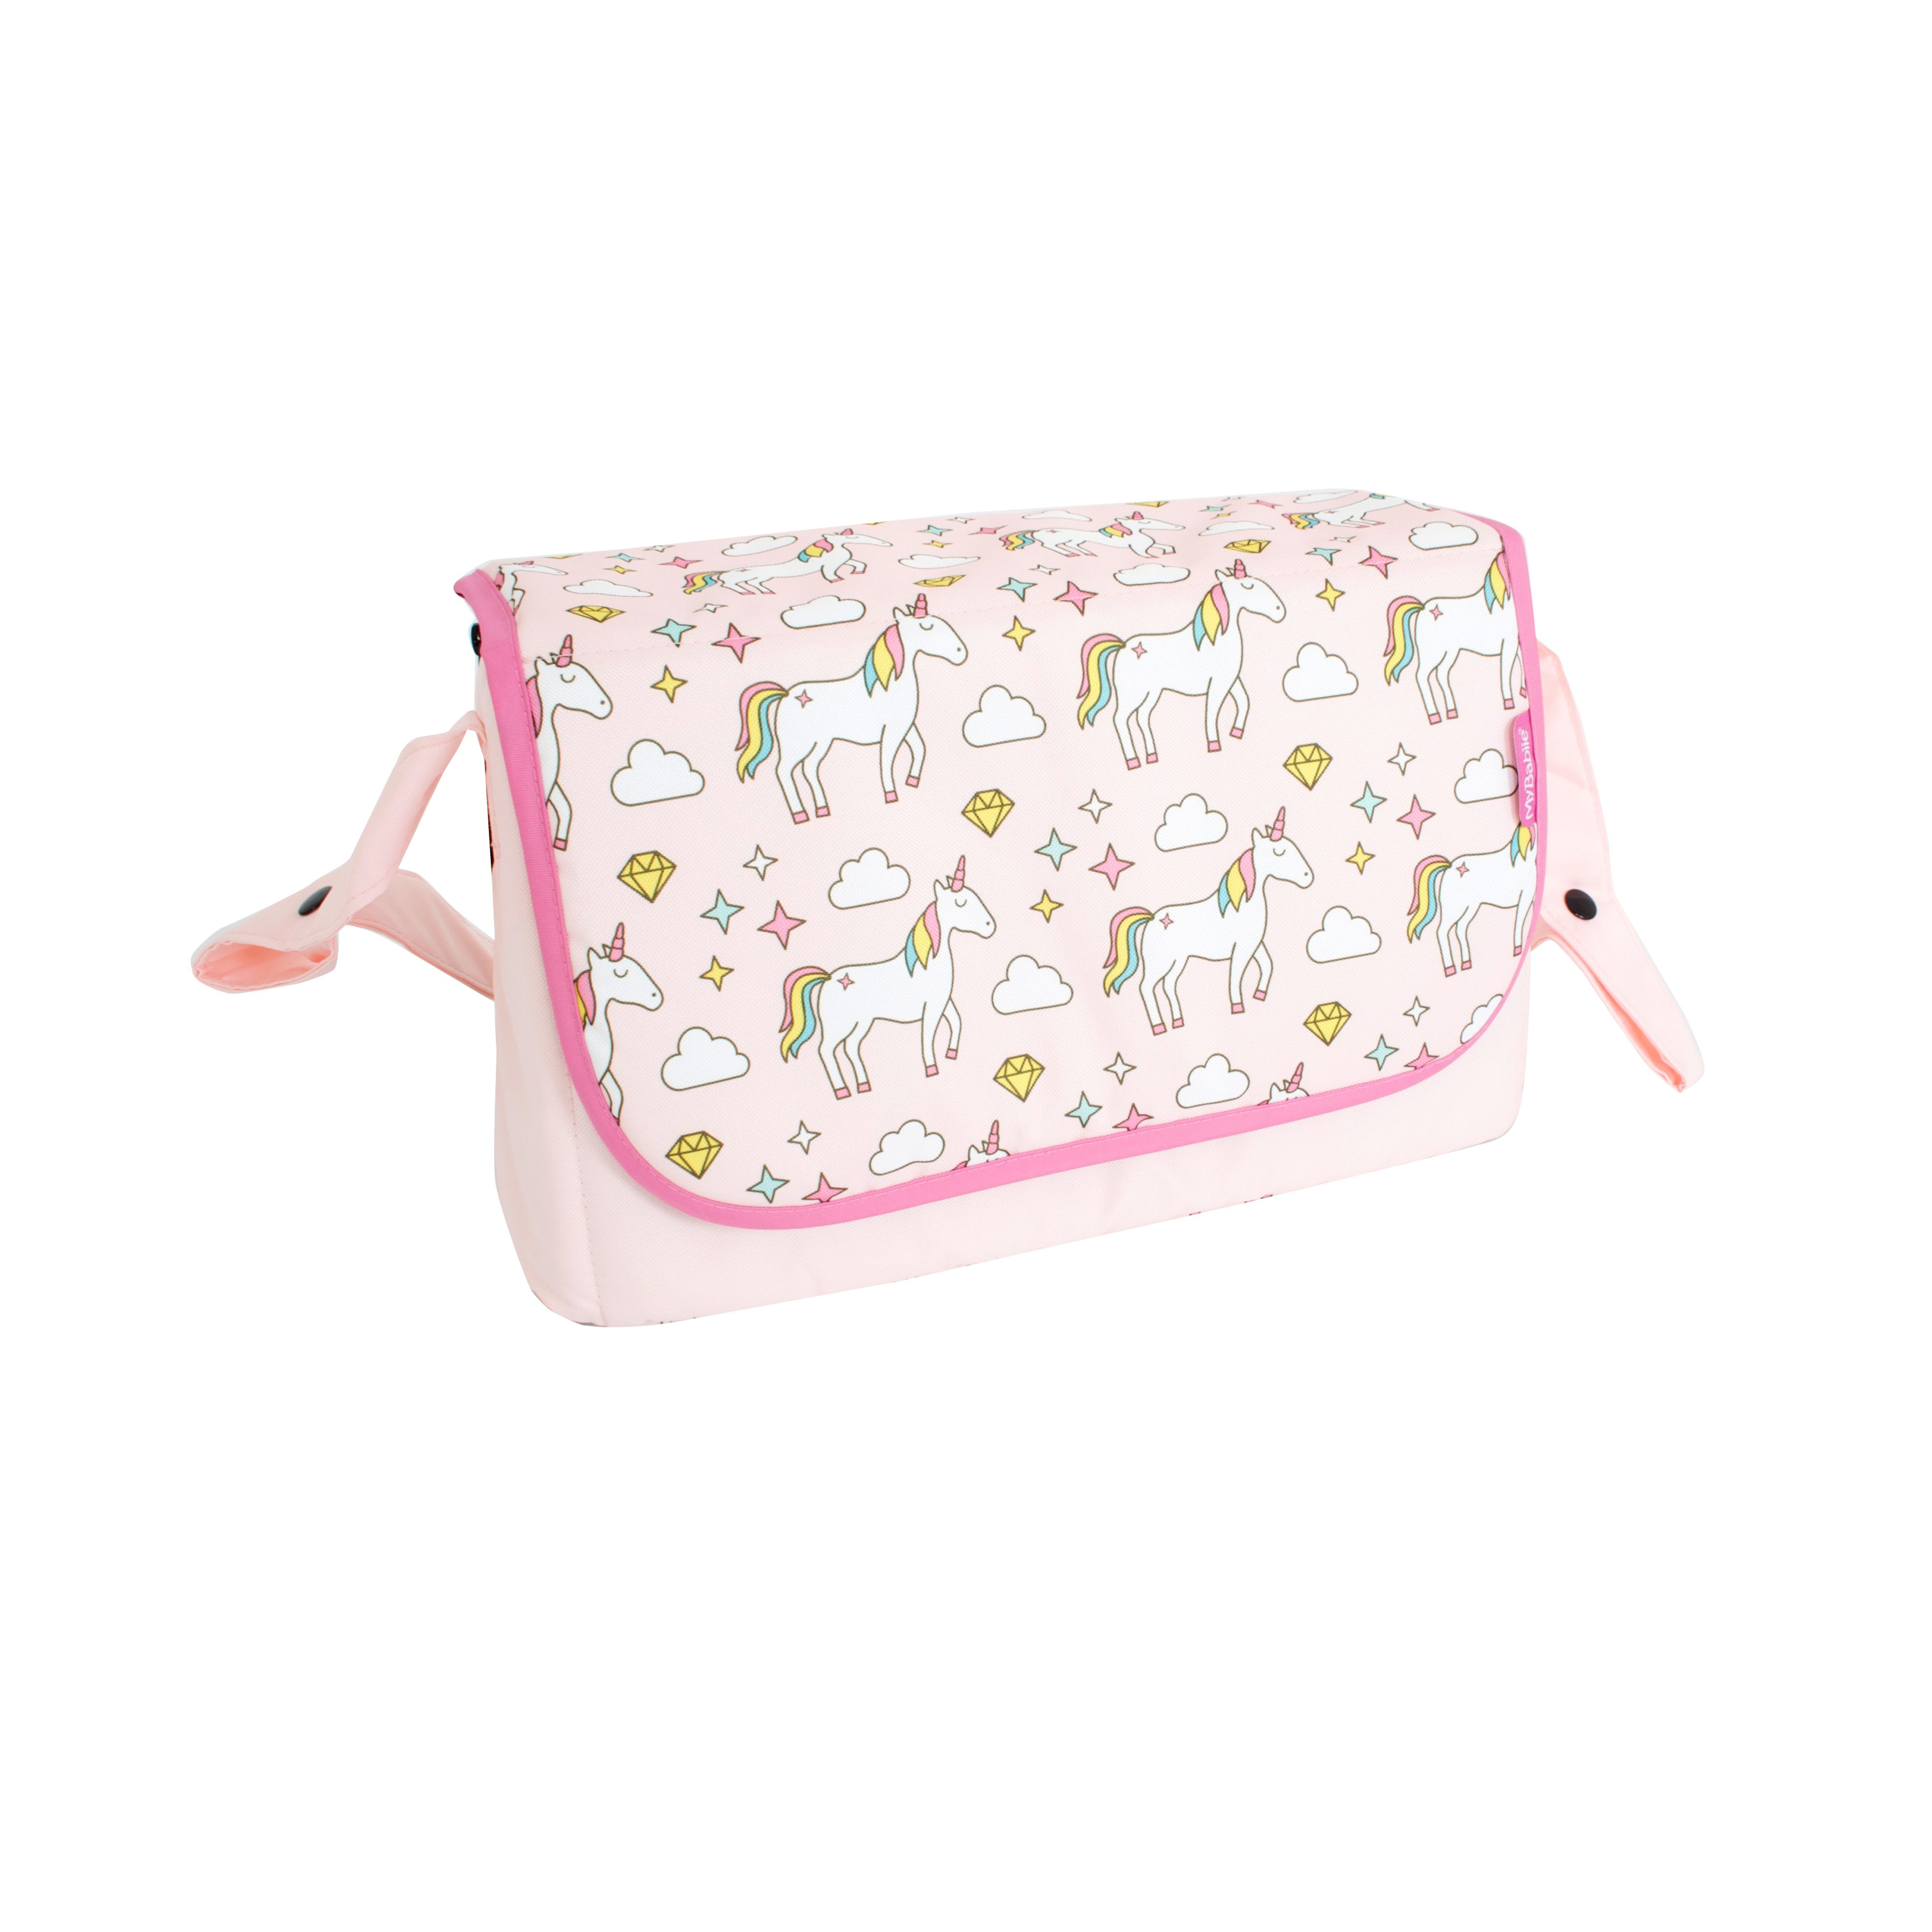 0ab36c06c2732 This My Babiie unicorns baby changing bag is a simple and practical  addition to your My Babiie pushchair. Made in a fun pink unicorns print,  this change bag ...